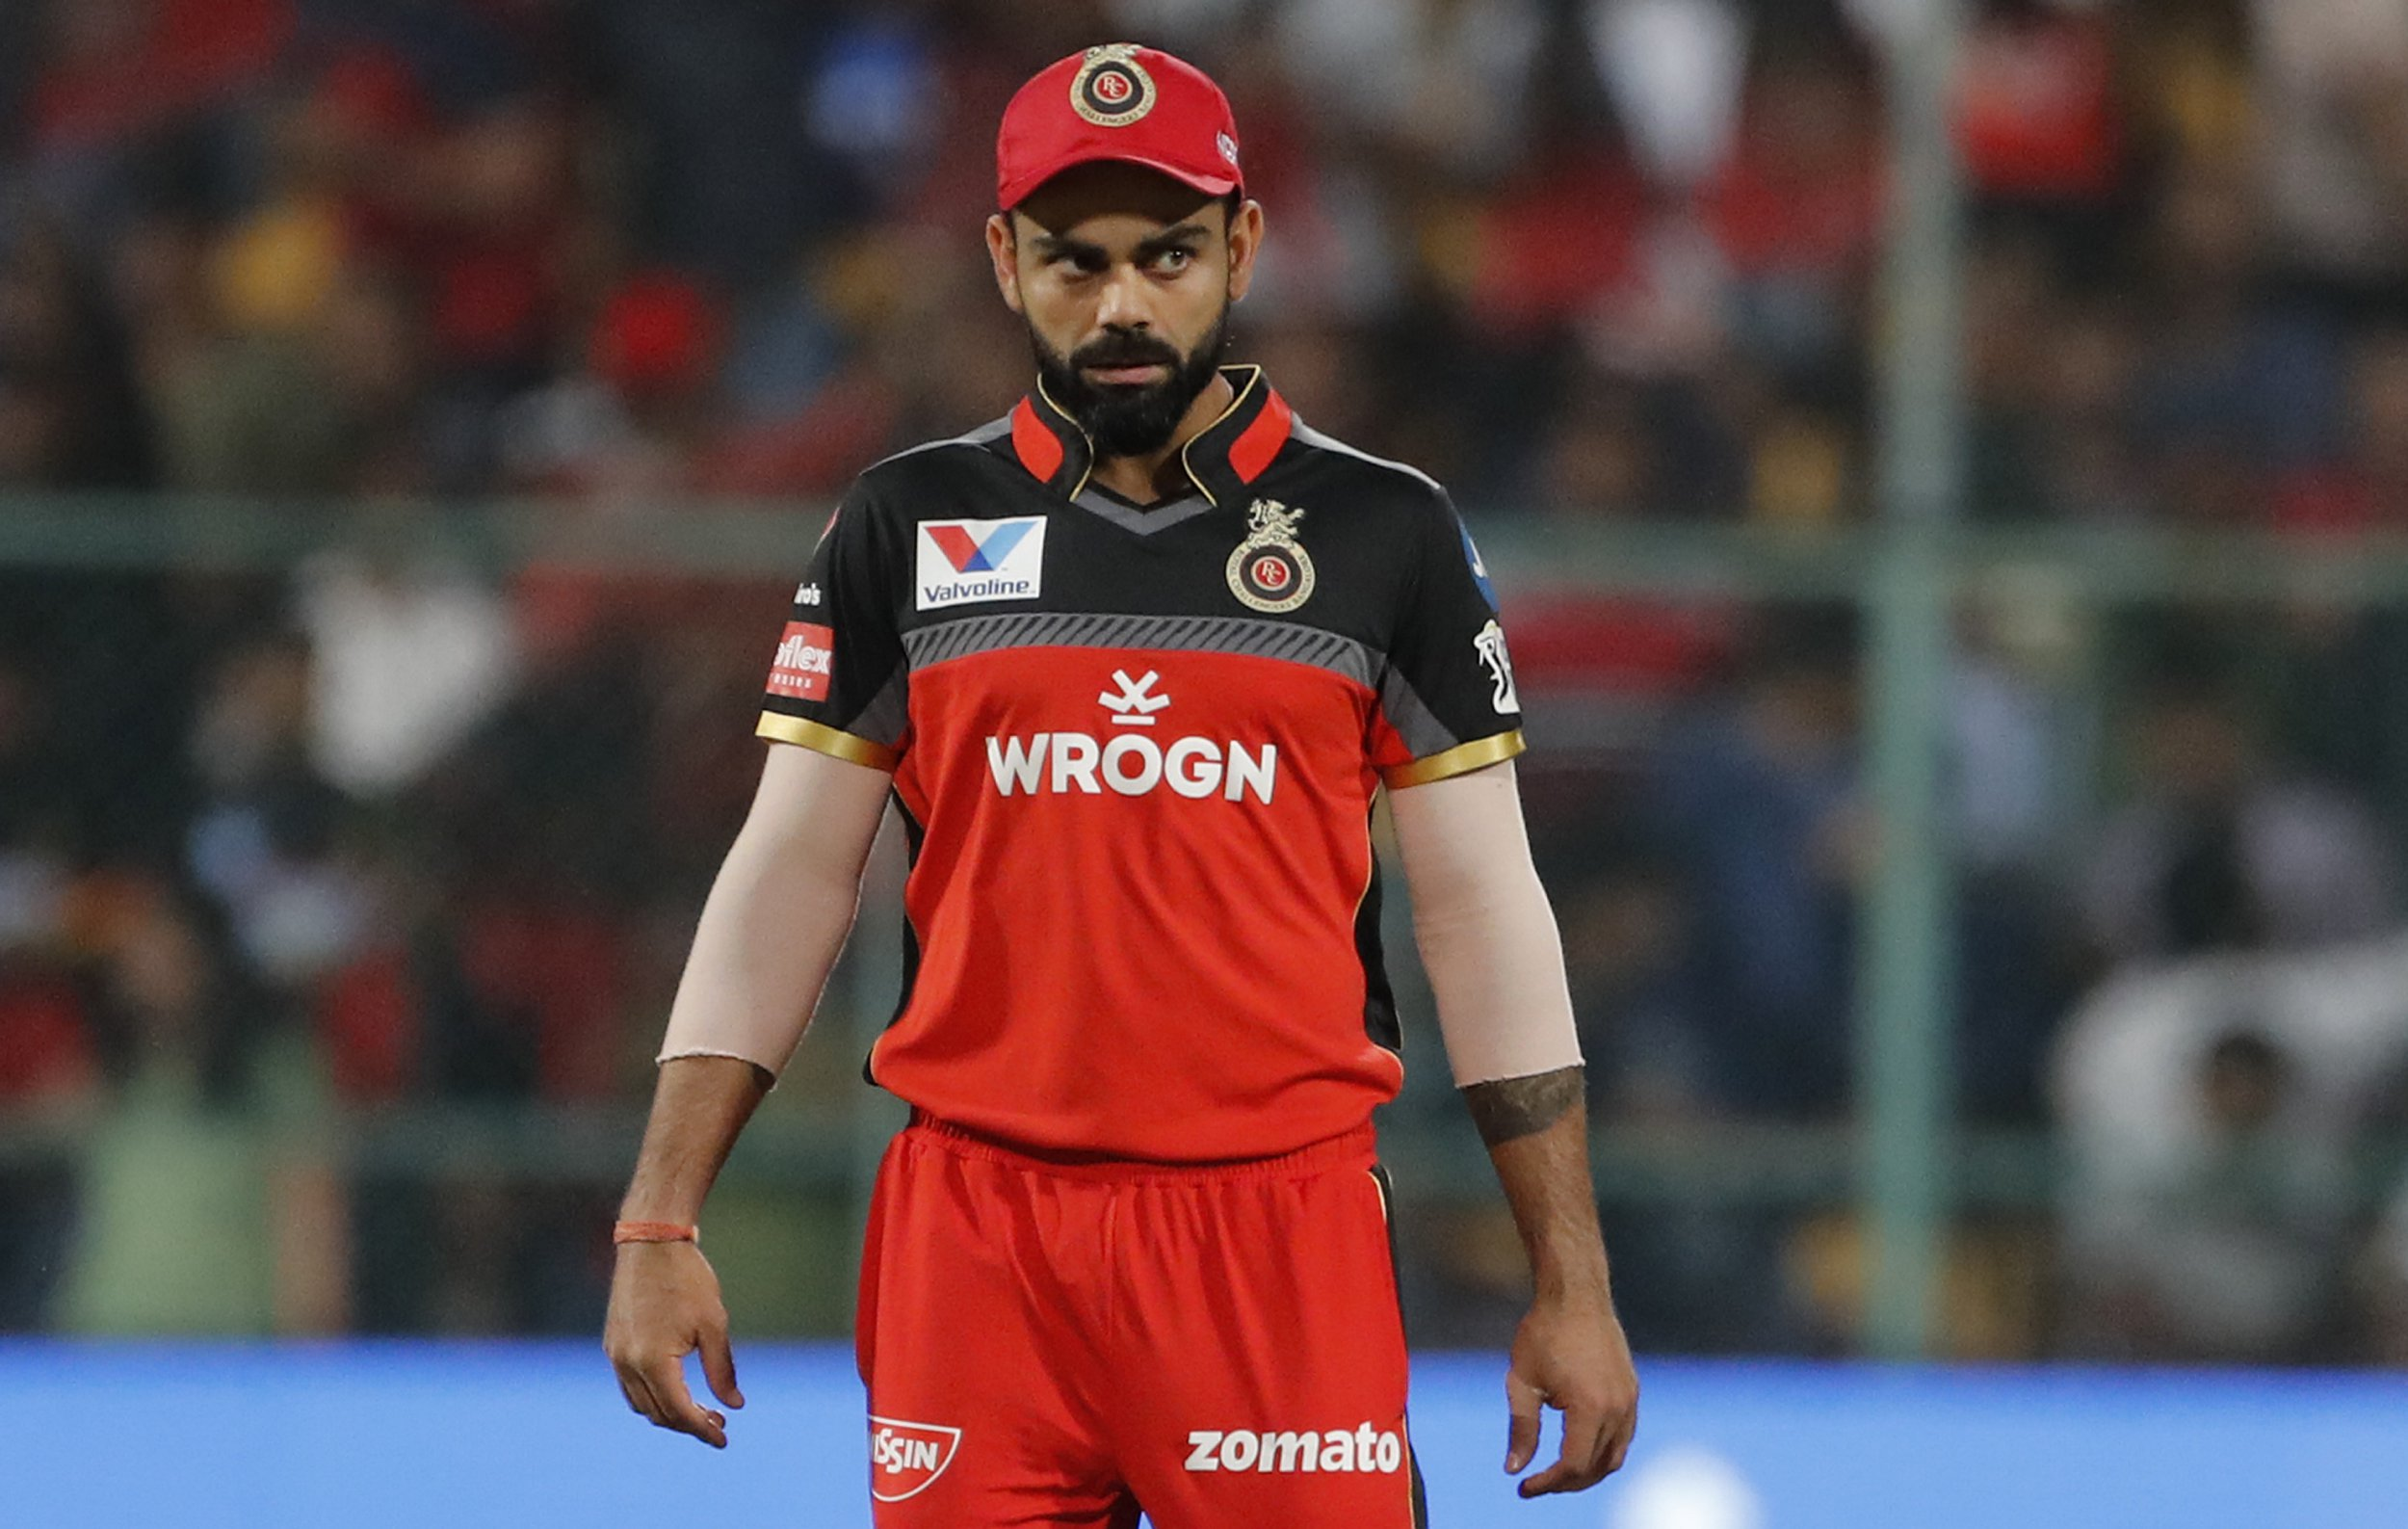 Royal Challengers Bangalore captain Virat Kohli walks into the field at the start of the VIVO IPL T20 cricket match between Royal Challengers Bangalore and Mumbai Indians in Bangalore, India, Thursday, March 28, 2019. (AP Photo/Aijaz Rahi)